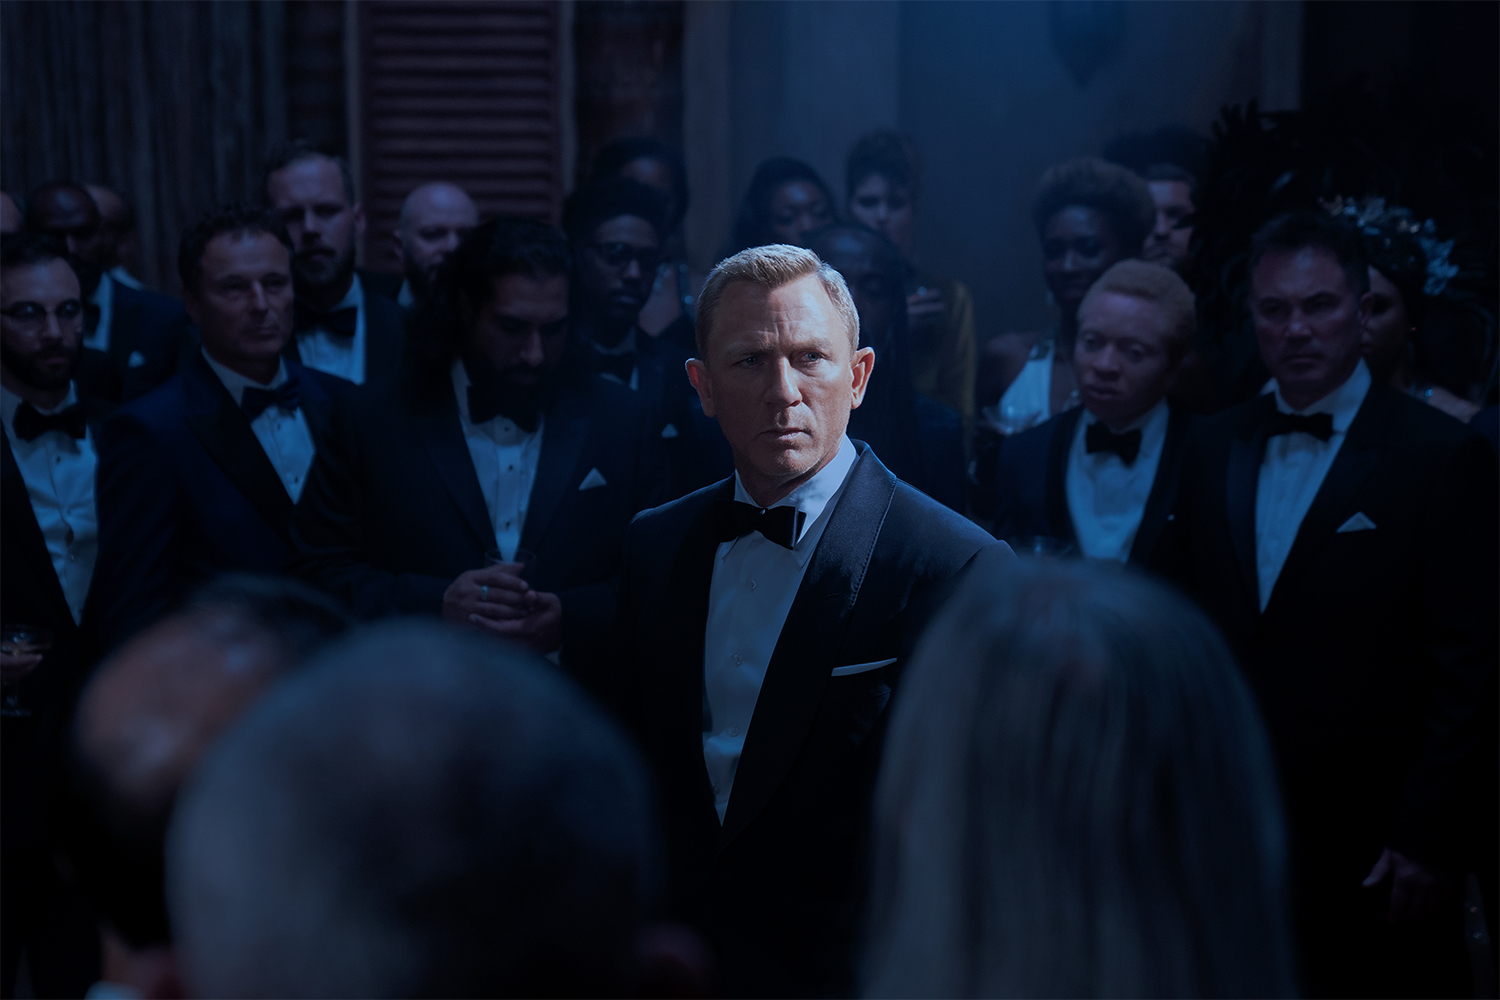 """Daniel Craig as James Bond pictured in a tuxedo in """"No Time to Die,"""" surrounded by enemies from the secret organization Spectre"""